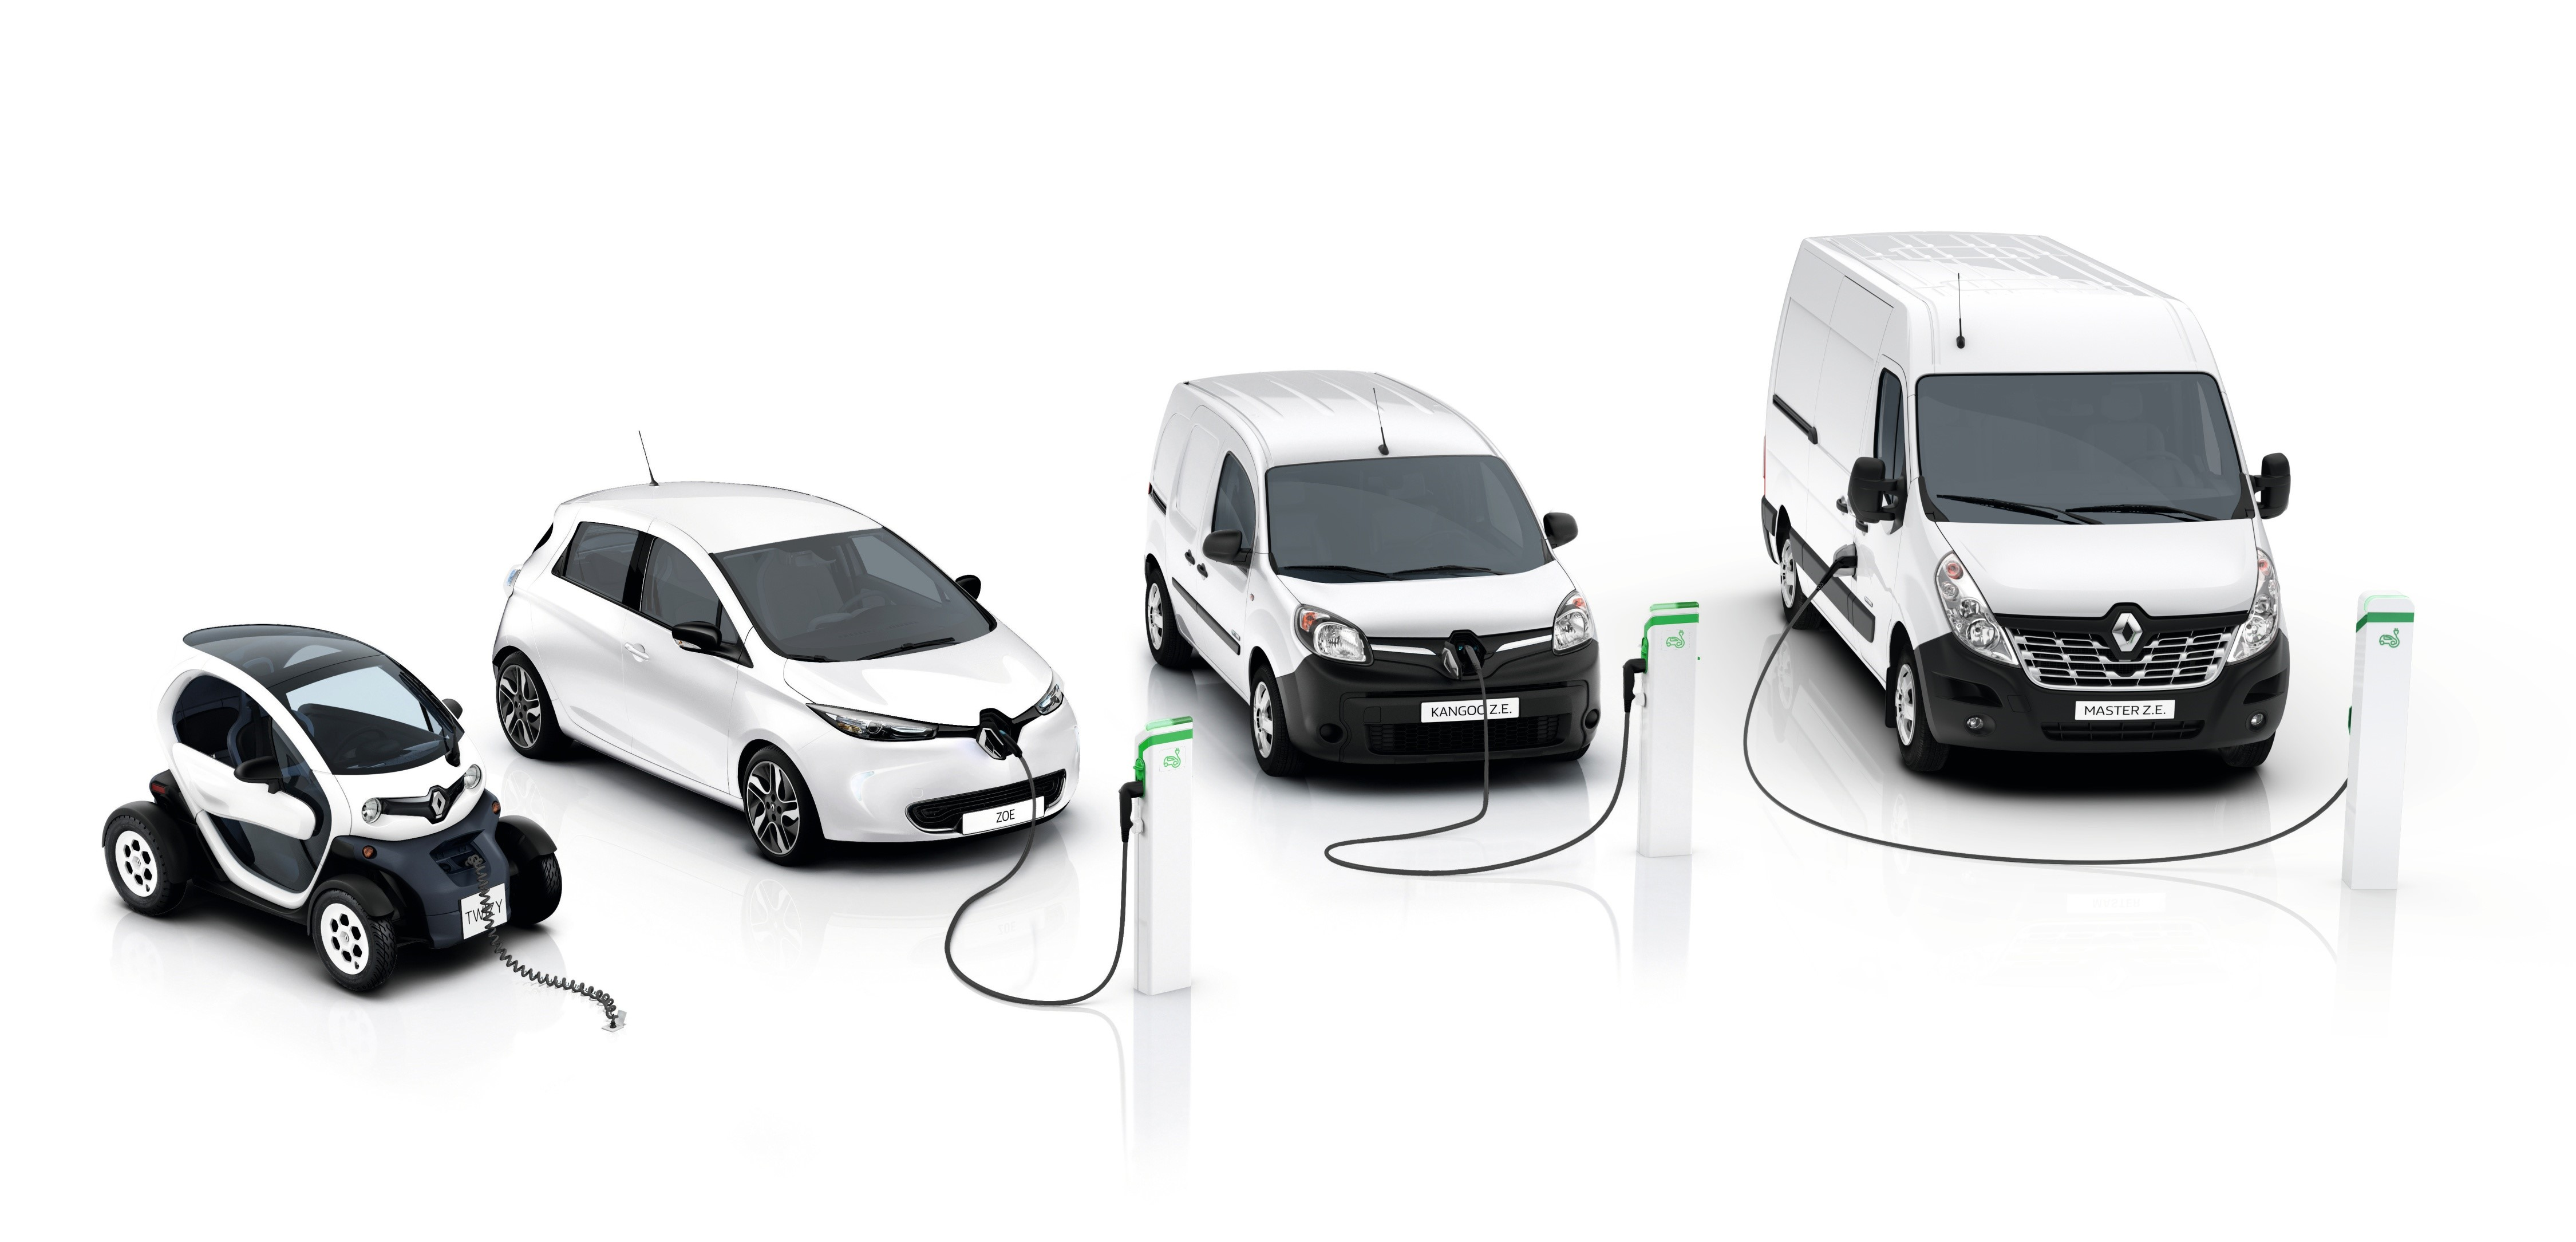 Renault expands its lineup of all-electric commercial